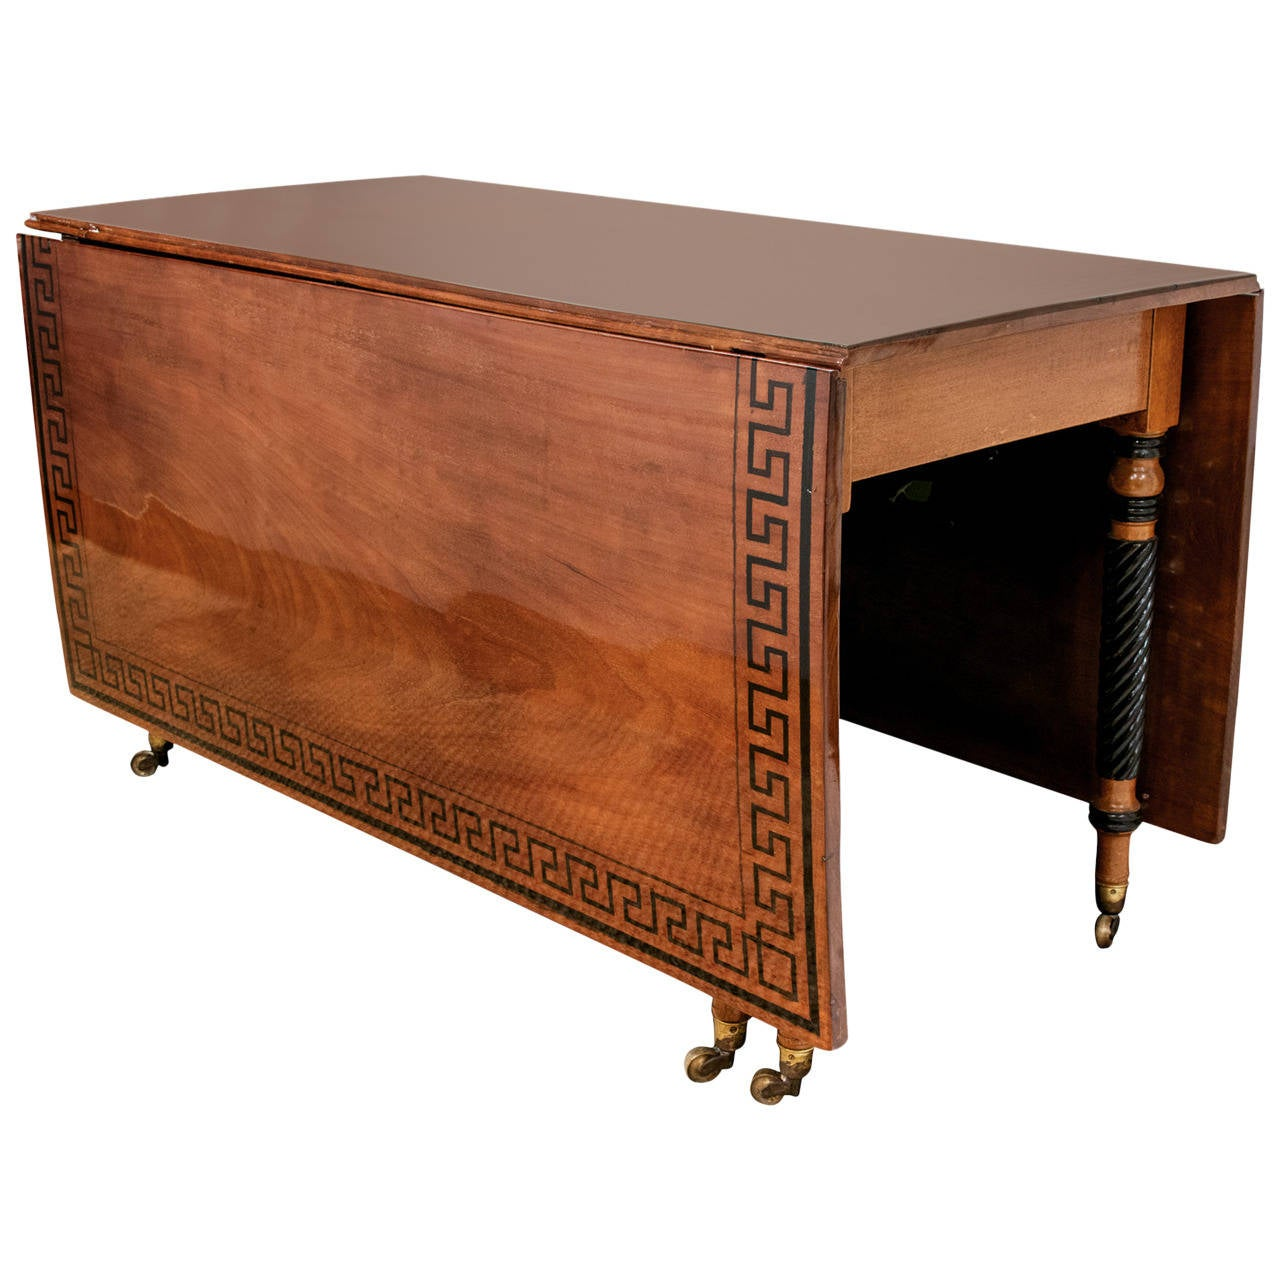 Regency Mahogany Drop-Leaf Table 1